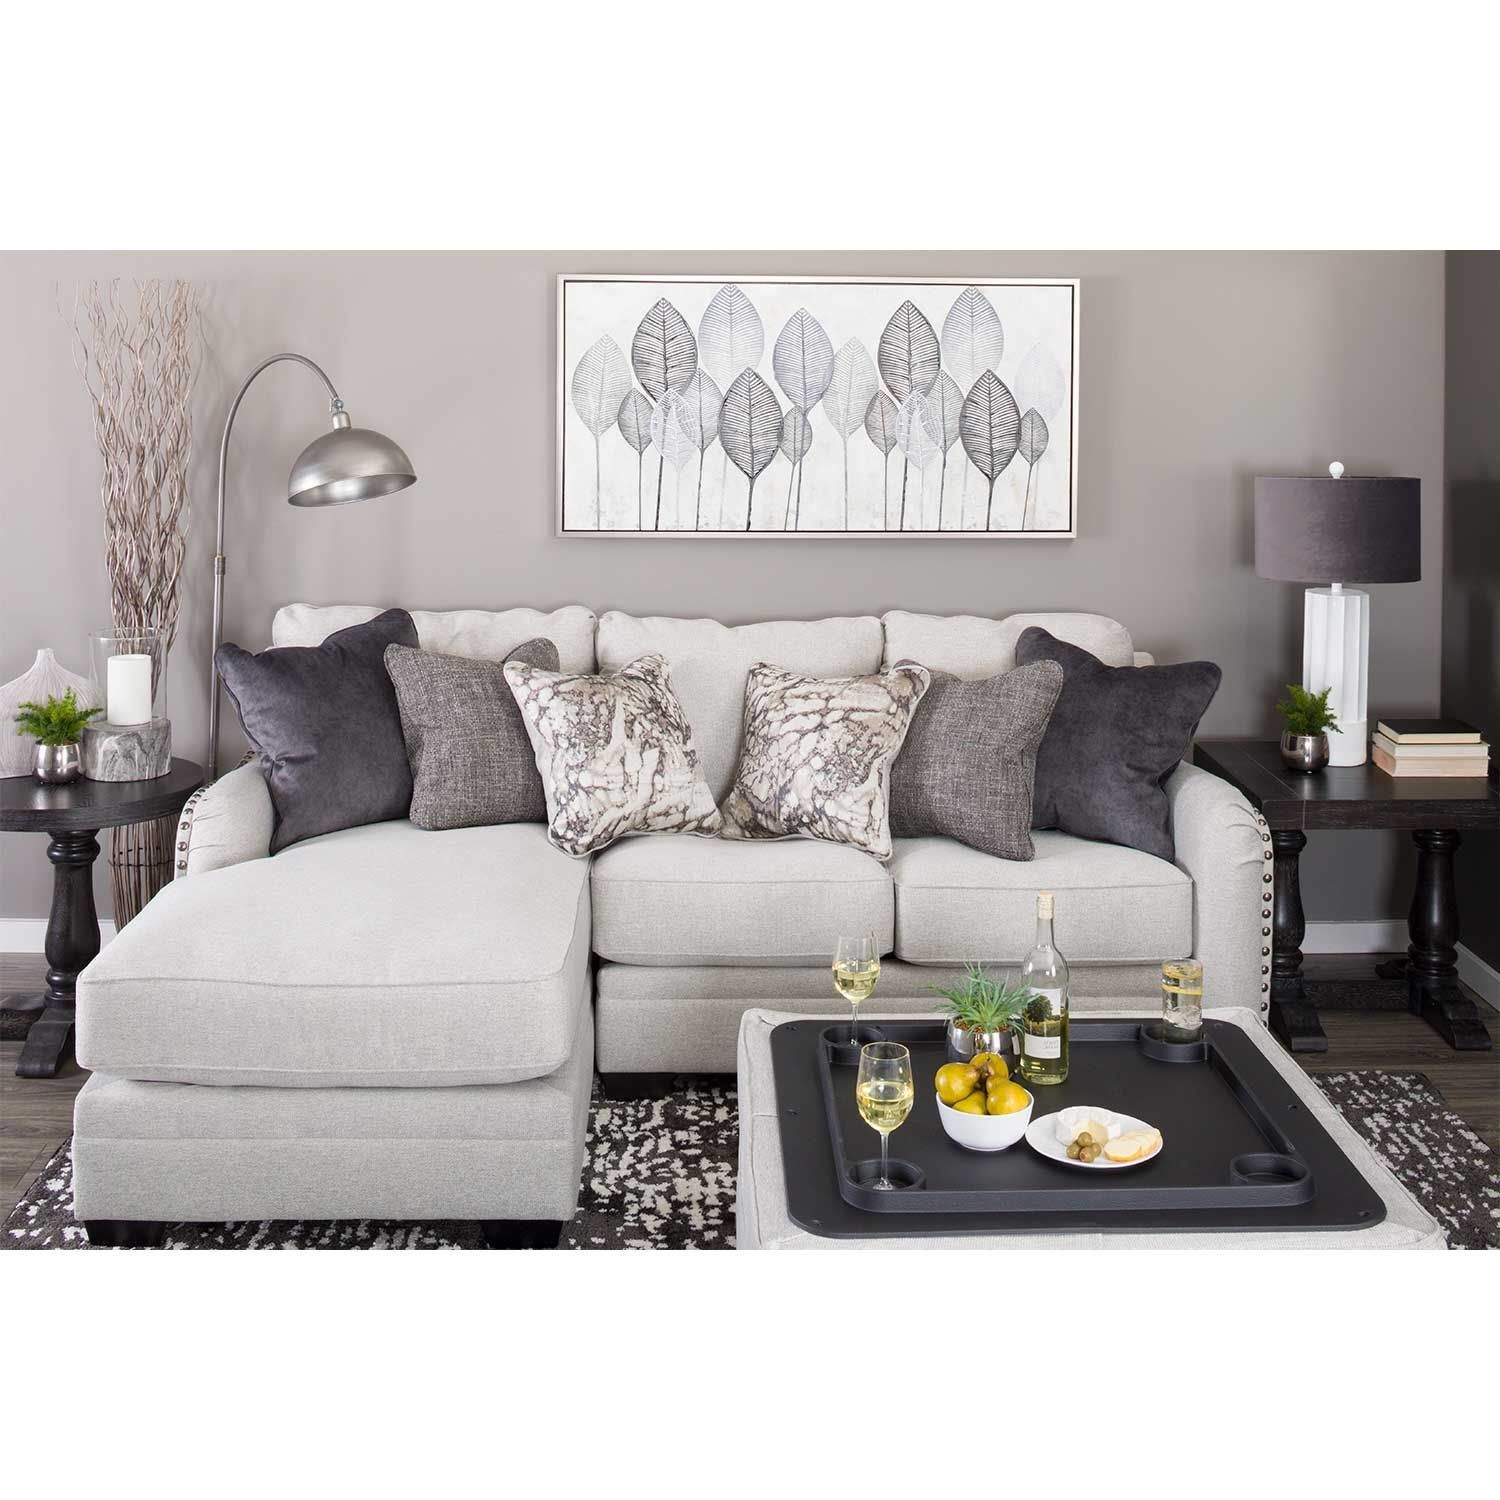 Dellara 2pc Sectional With Laf Chaise